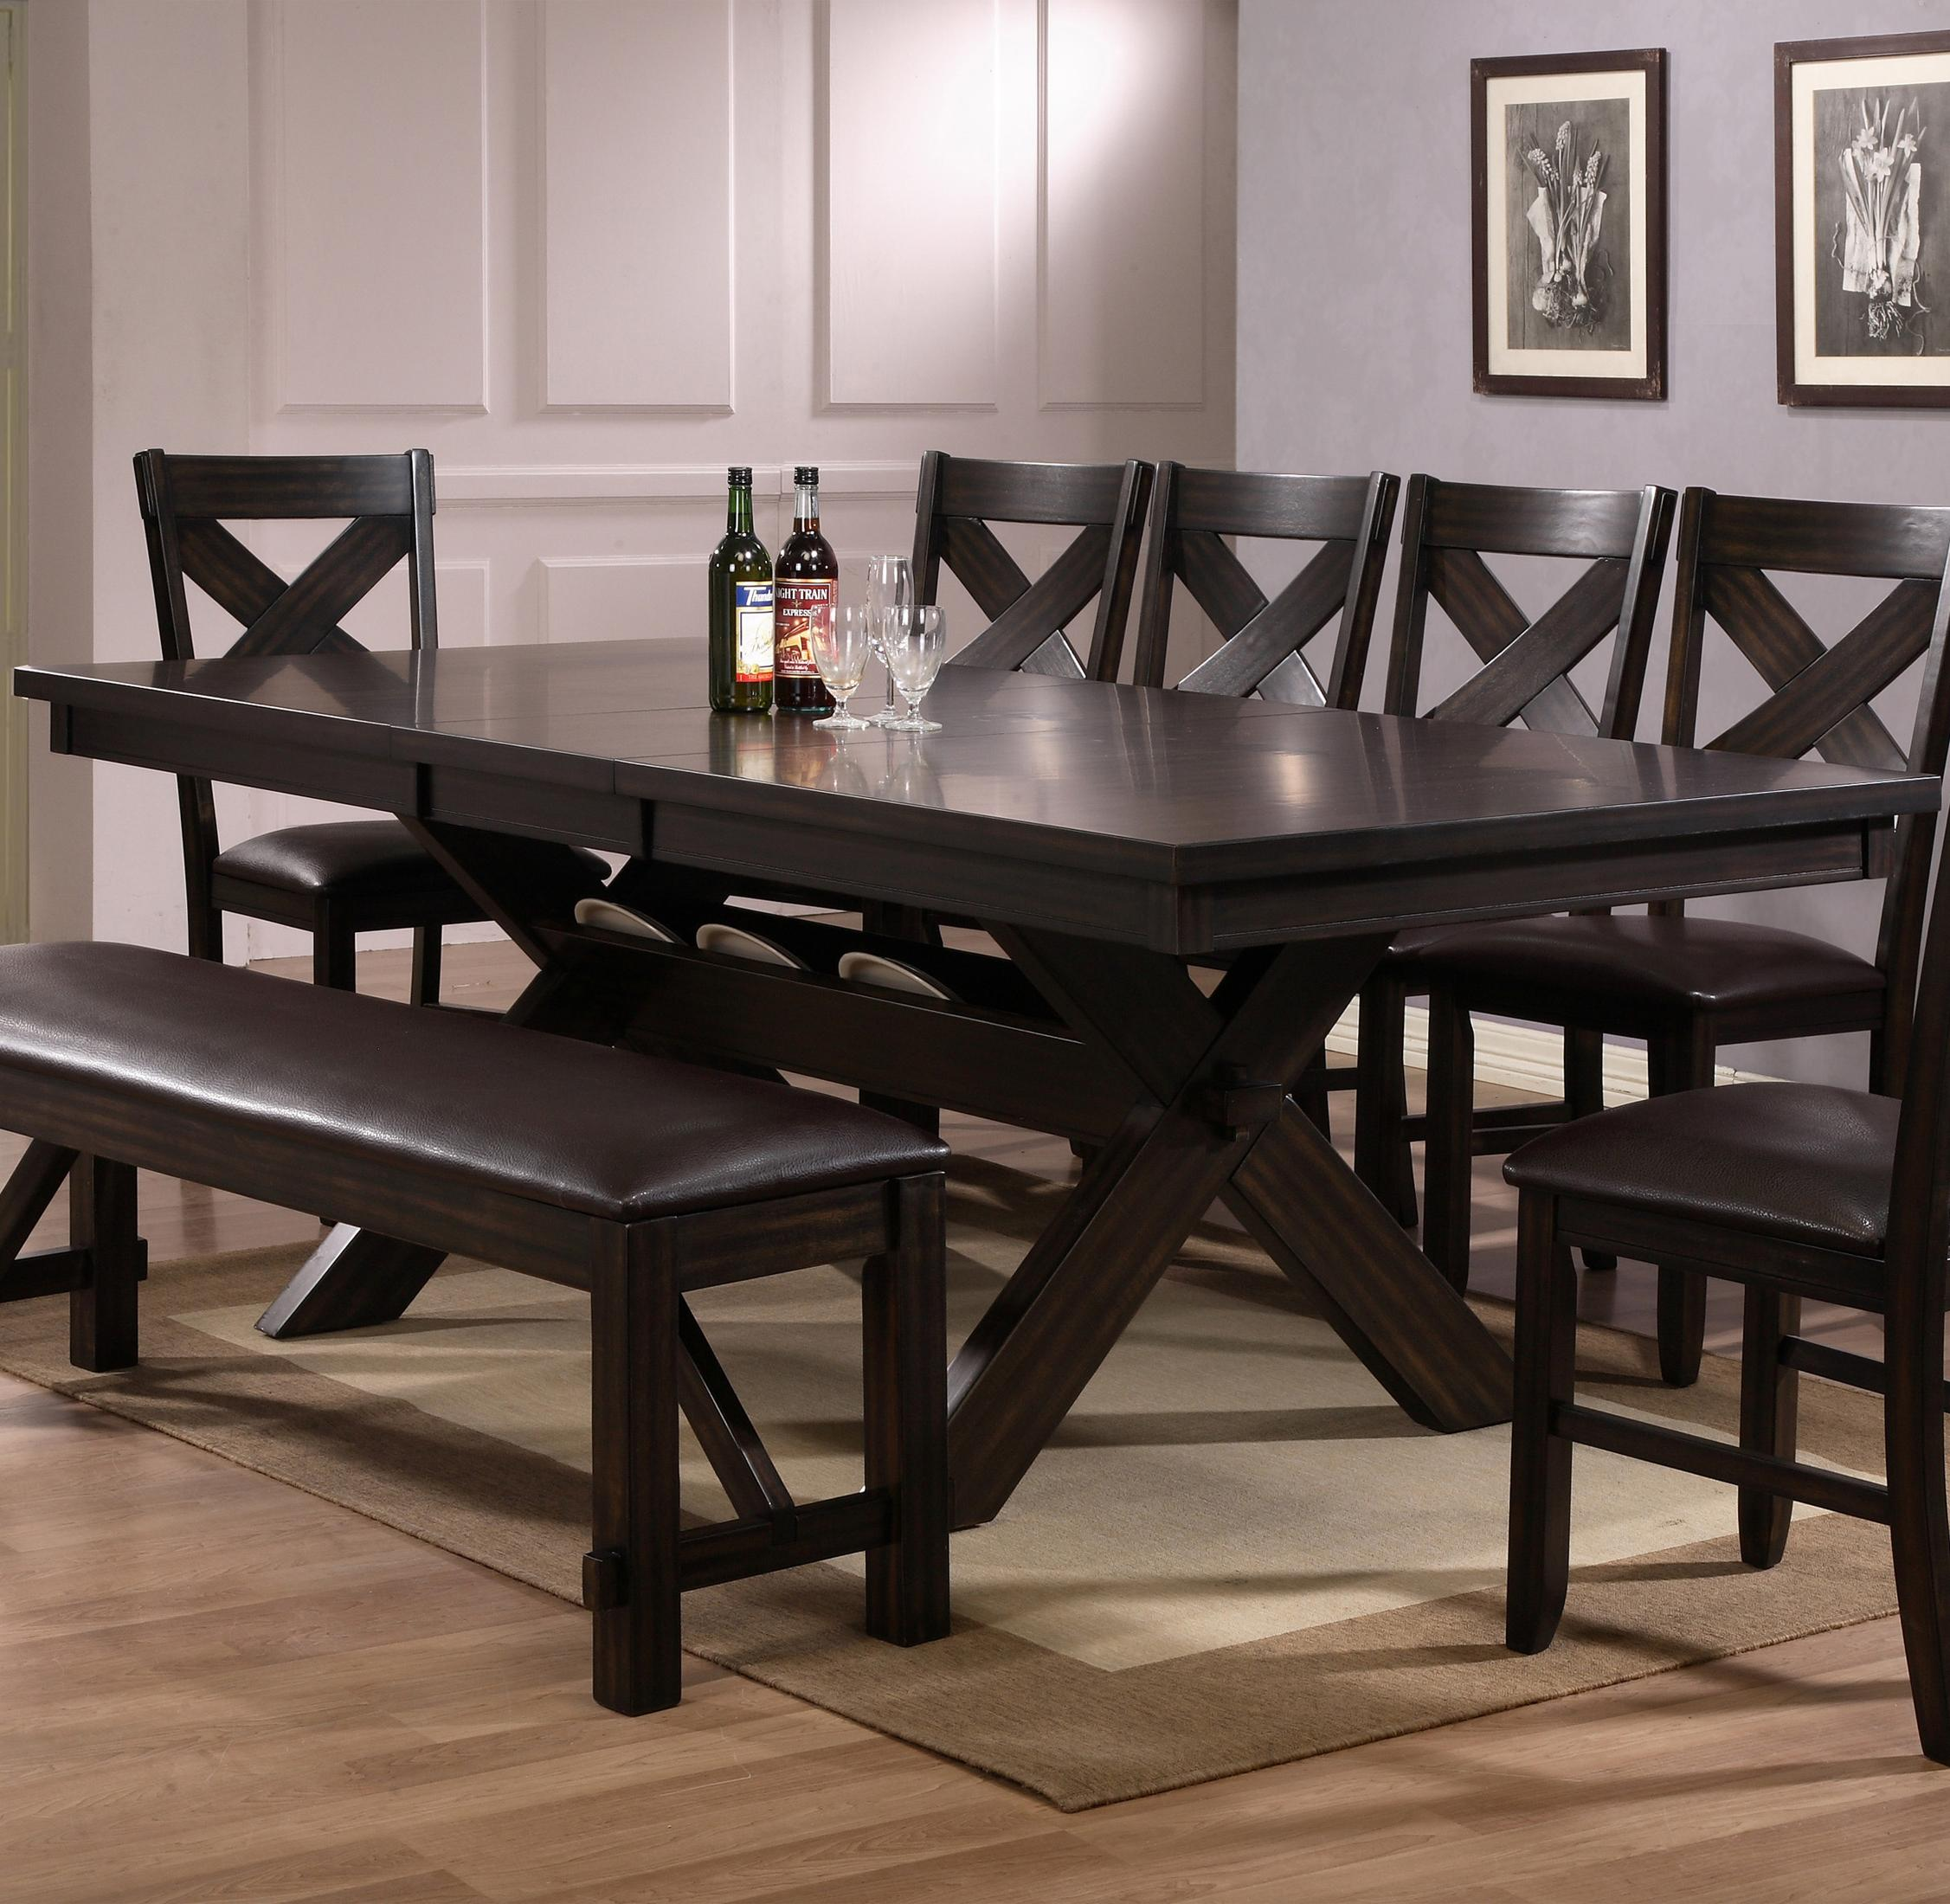 Dining Room Bench With Storage: Crown Mark Havana Rectangular Dining Table With Storage